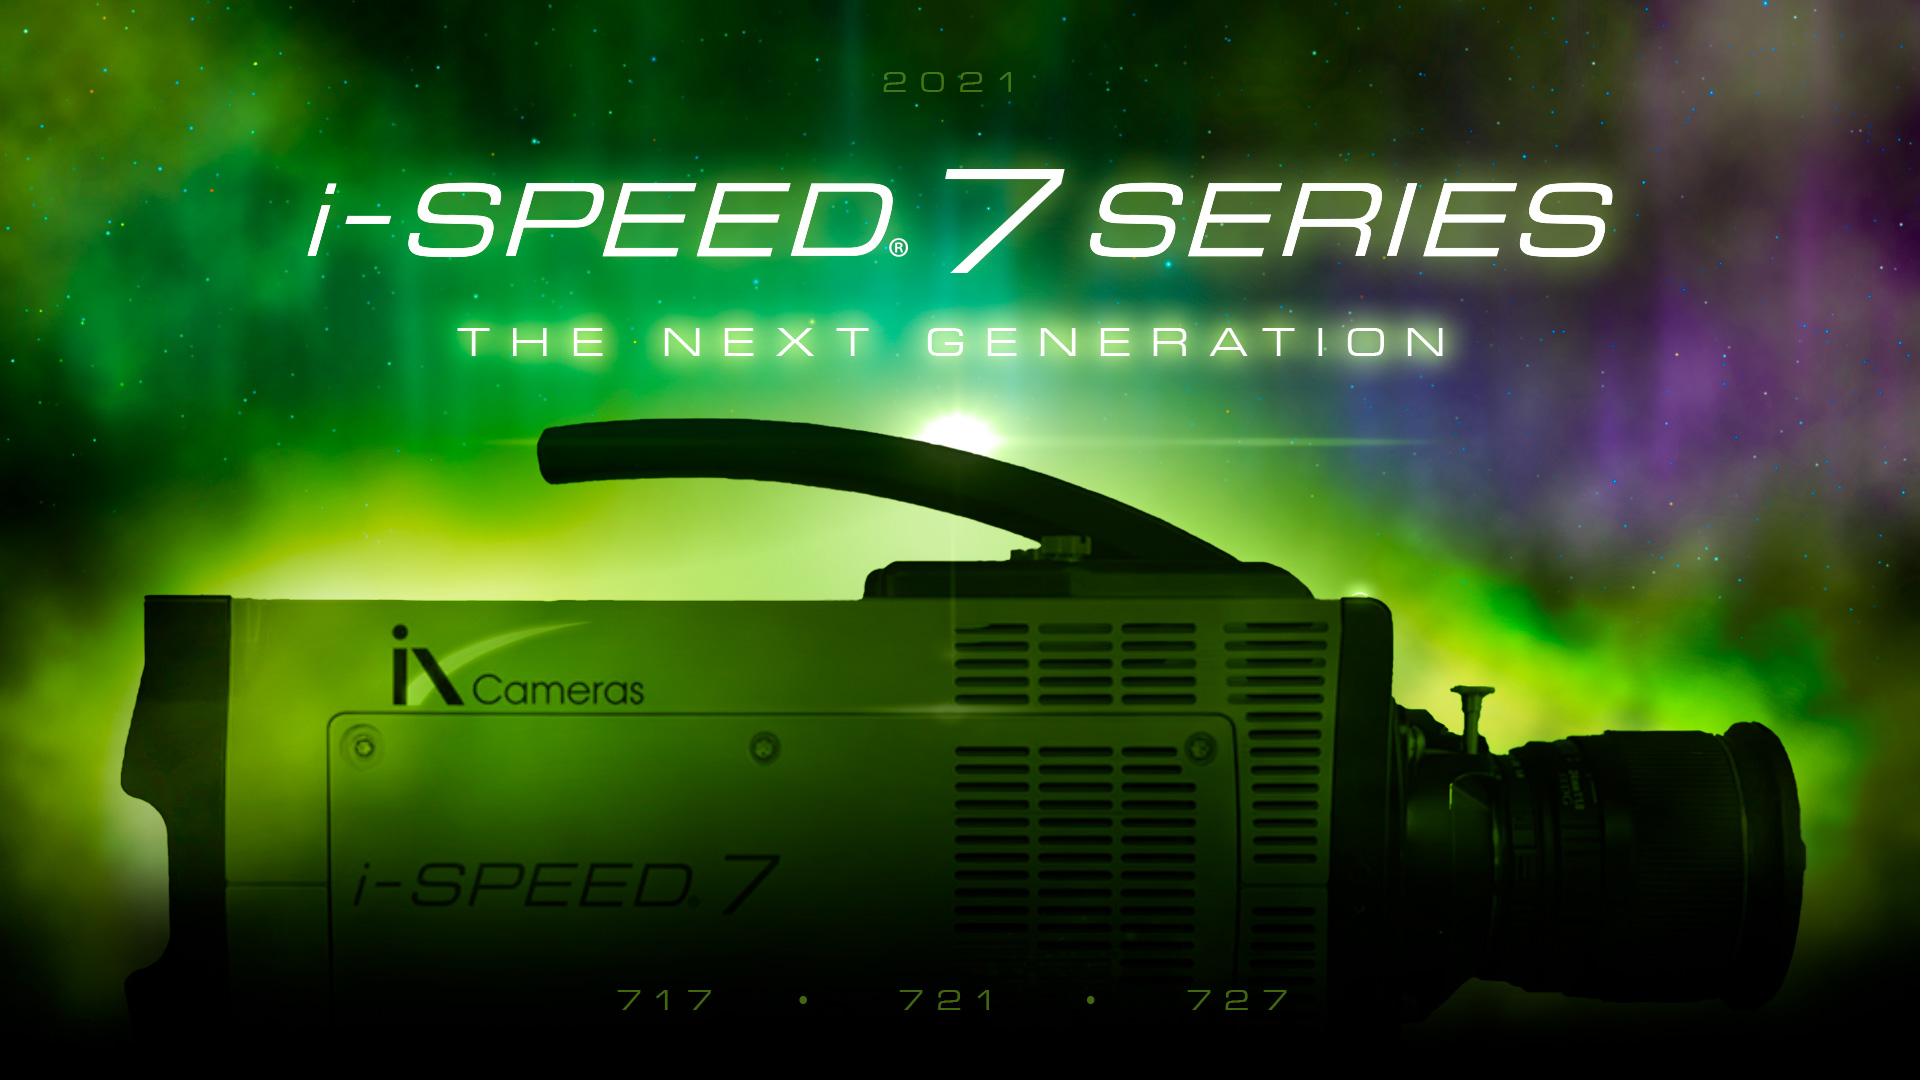 The i-SPEED® 7 Series, the next generation for 2021 featureing the 717, 721 and 727 models coming soon.